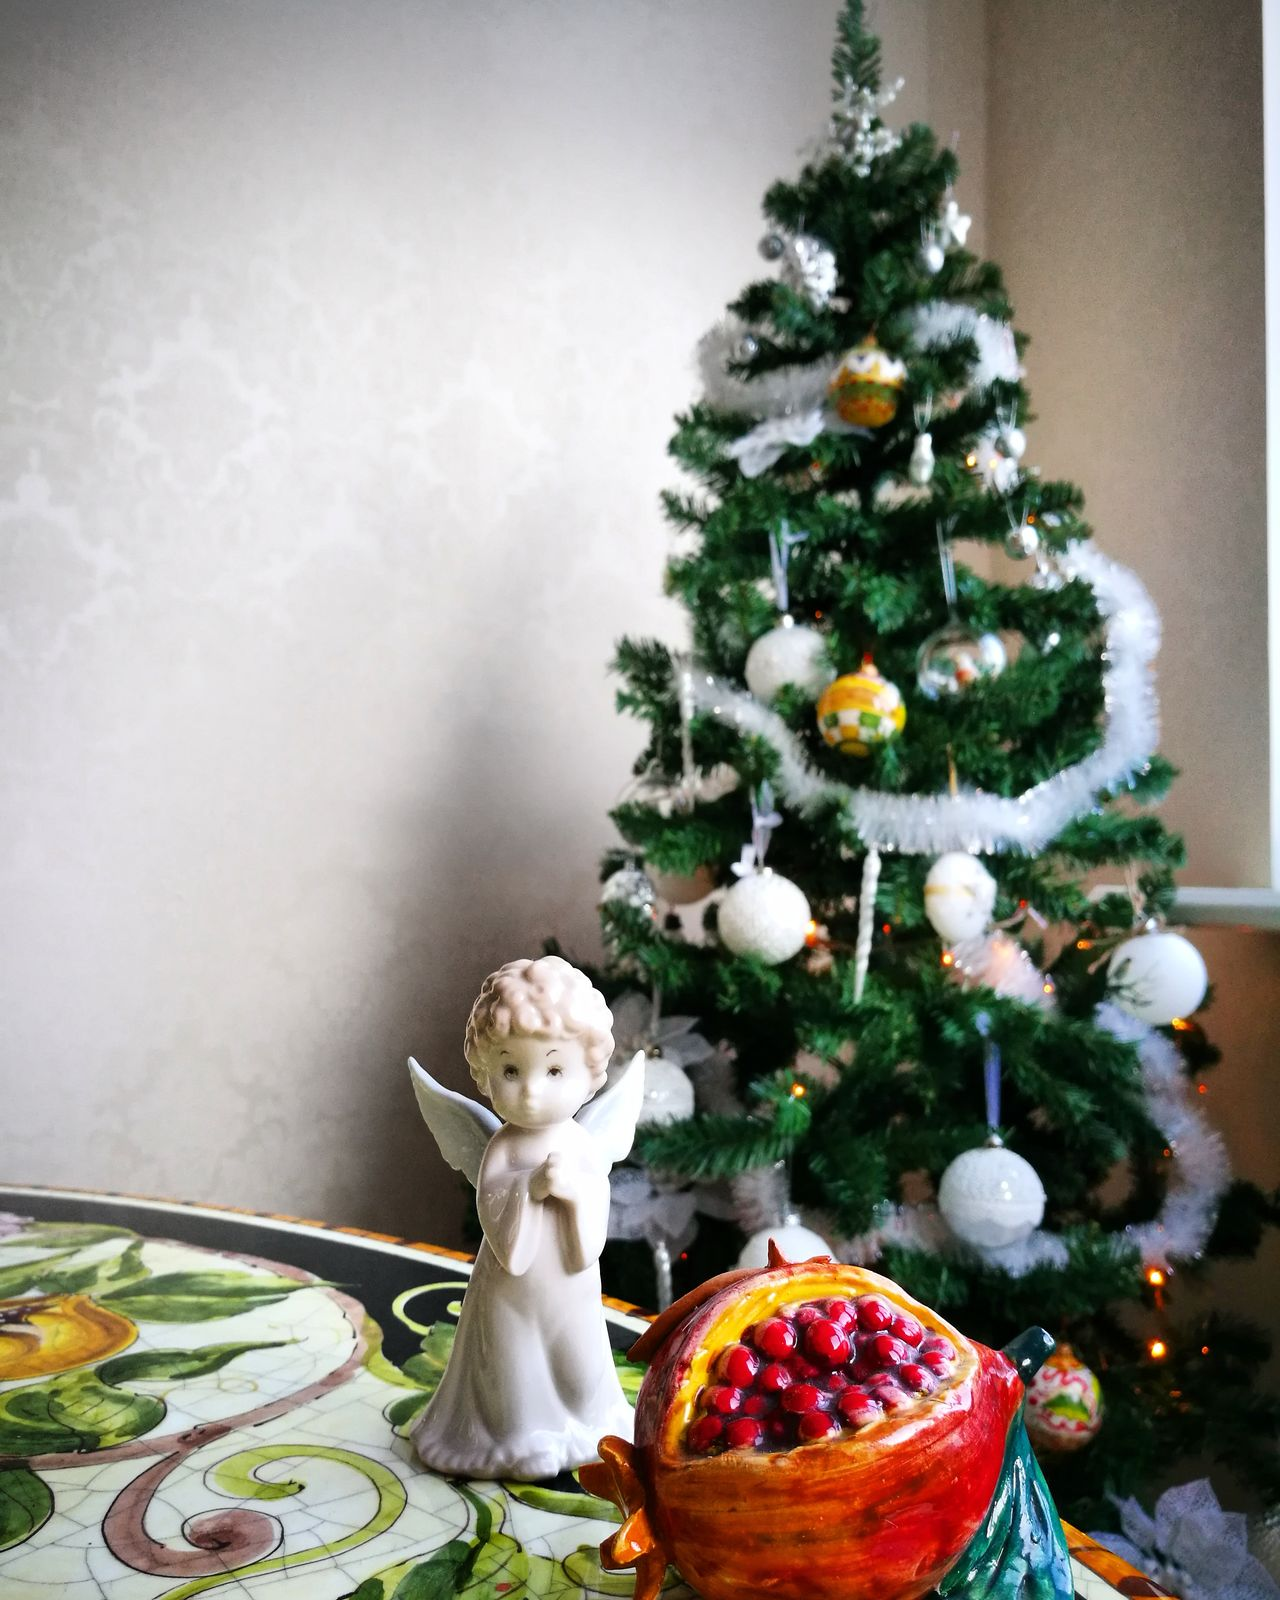 Christmas Tree Christmas Decoration Maioliche Stonetable Ceramics Deruta Angel